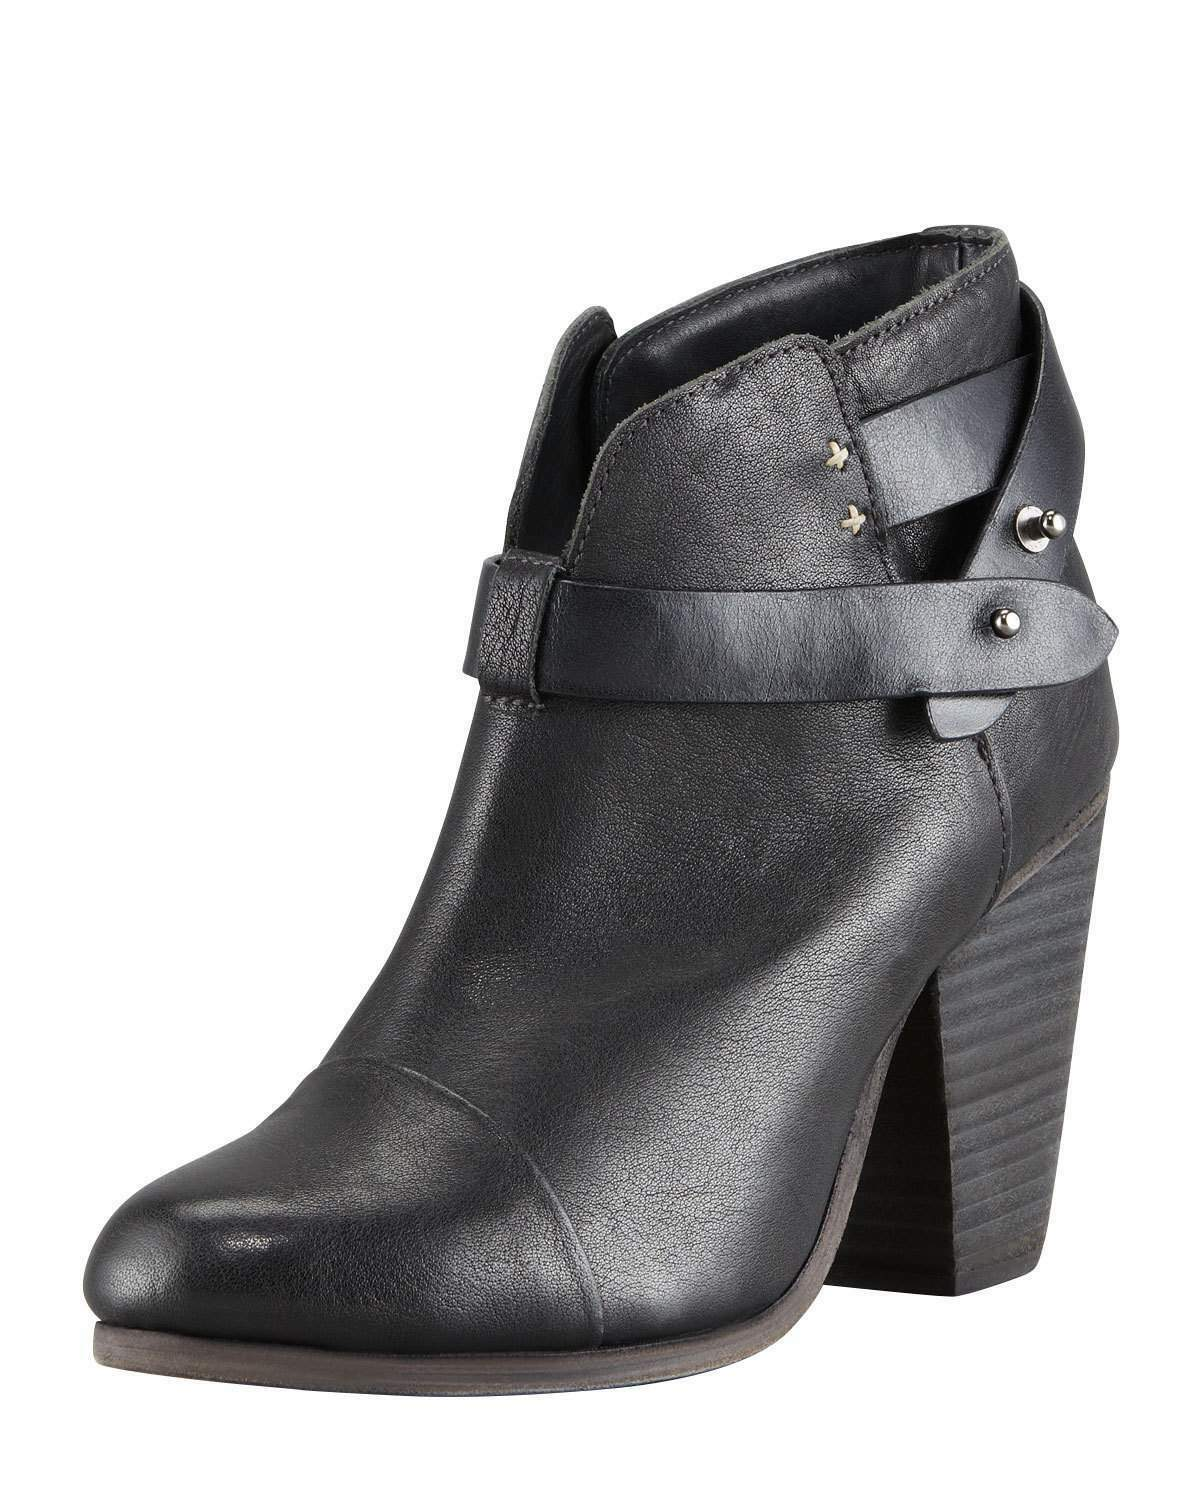 Rag & Bone Harrow Leather Ankle Boots Black Size 35 1 2